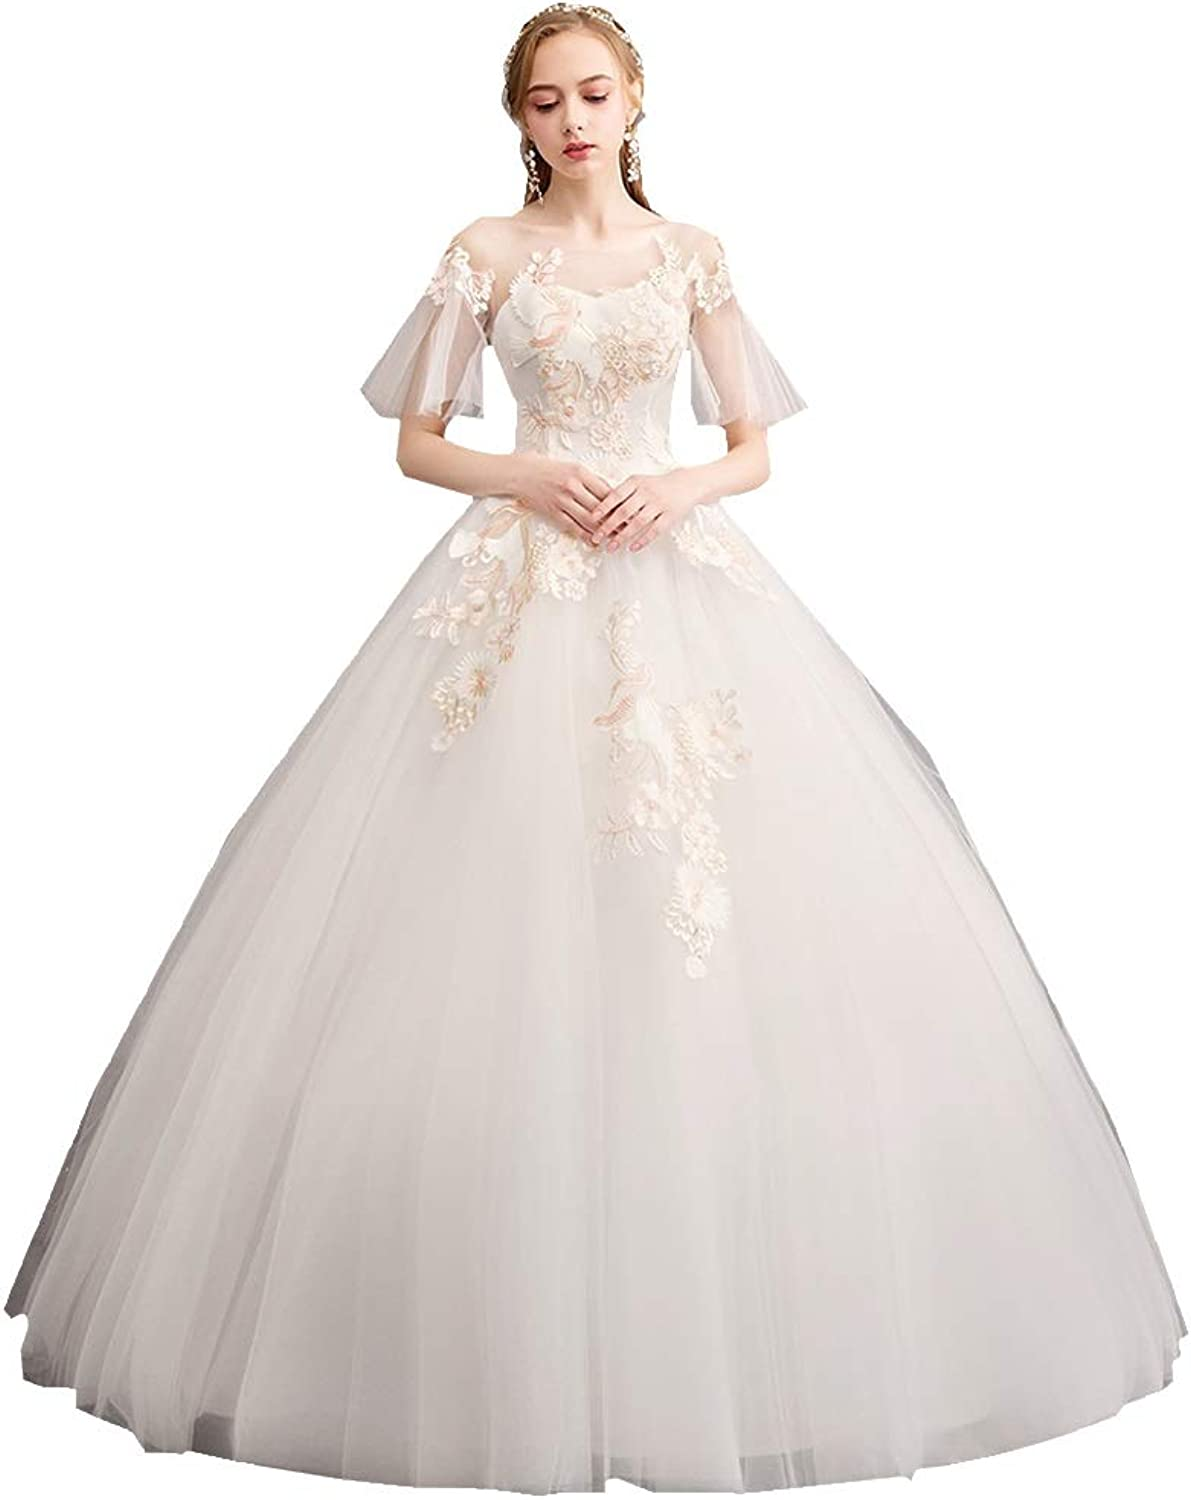 Women's Wedding Dress Qi Wedding Champagne Lace One Shoulder Trumpet Sleeve Bride was Thin Dreamy Light Ball Gowns Evening Dress (Size   S)